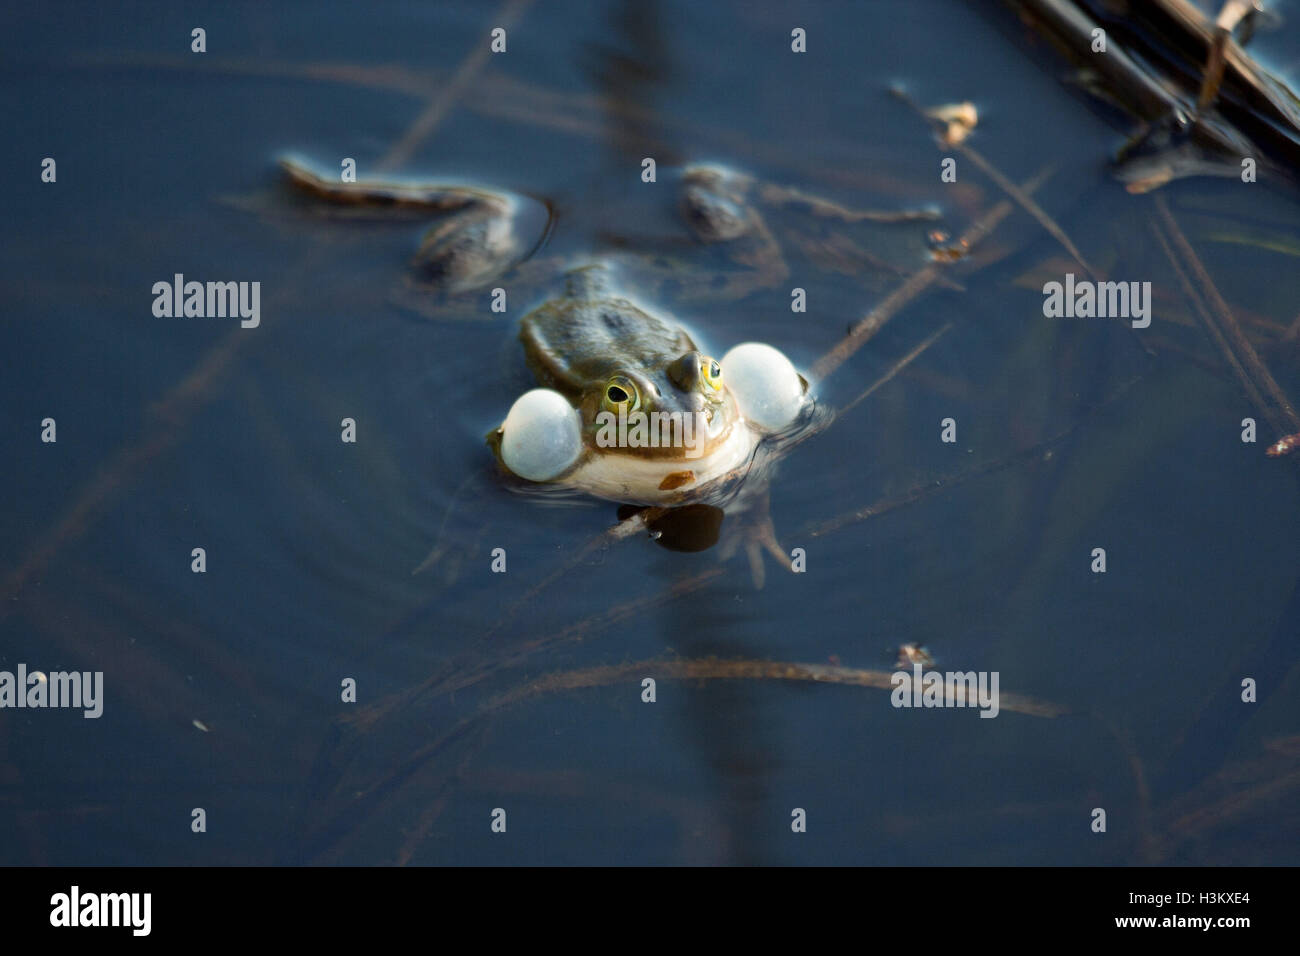 Croaking frog in a swamp - Stock Image